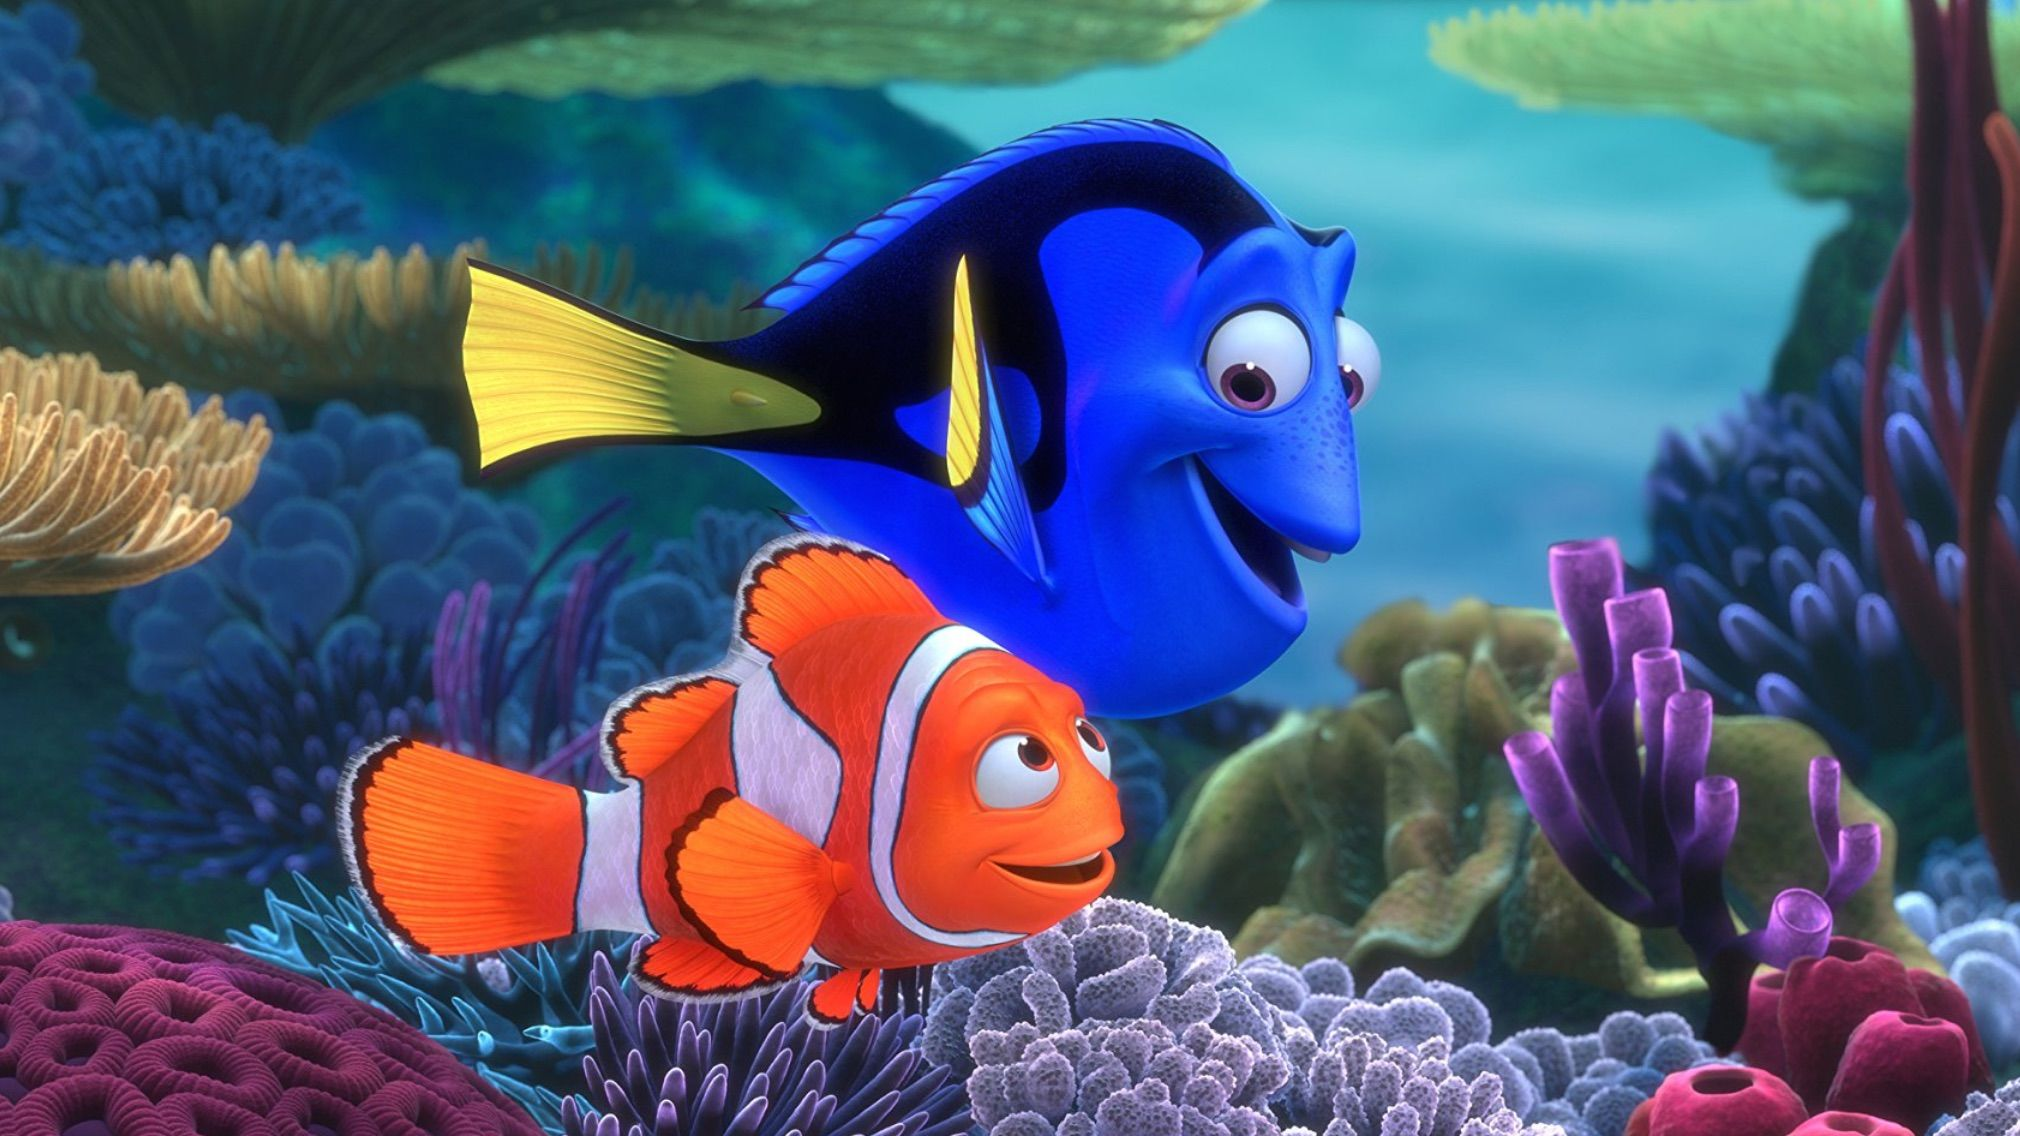 0875f62b82 15 Things You Might Not Know About Finding Nemo | Mental Floss